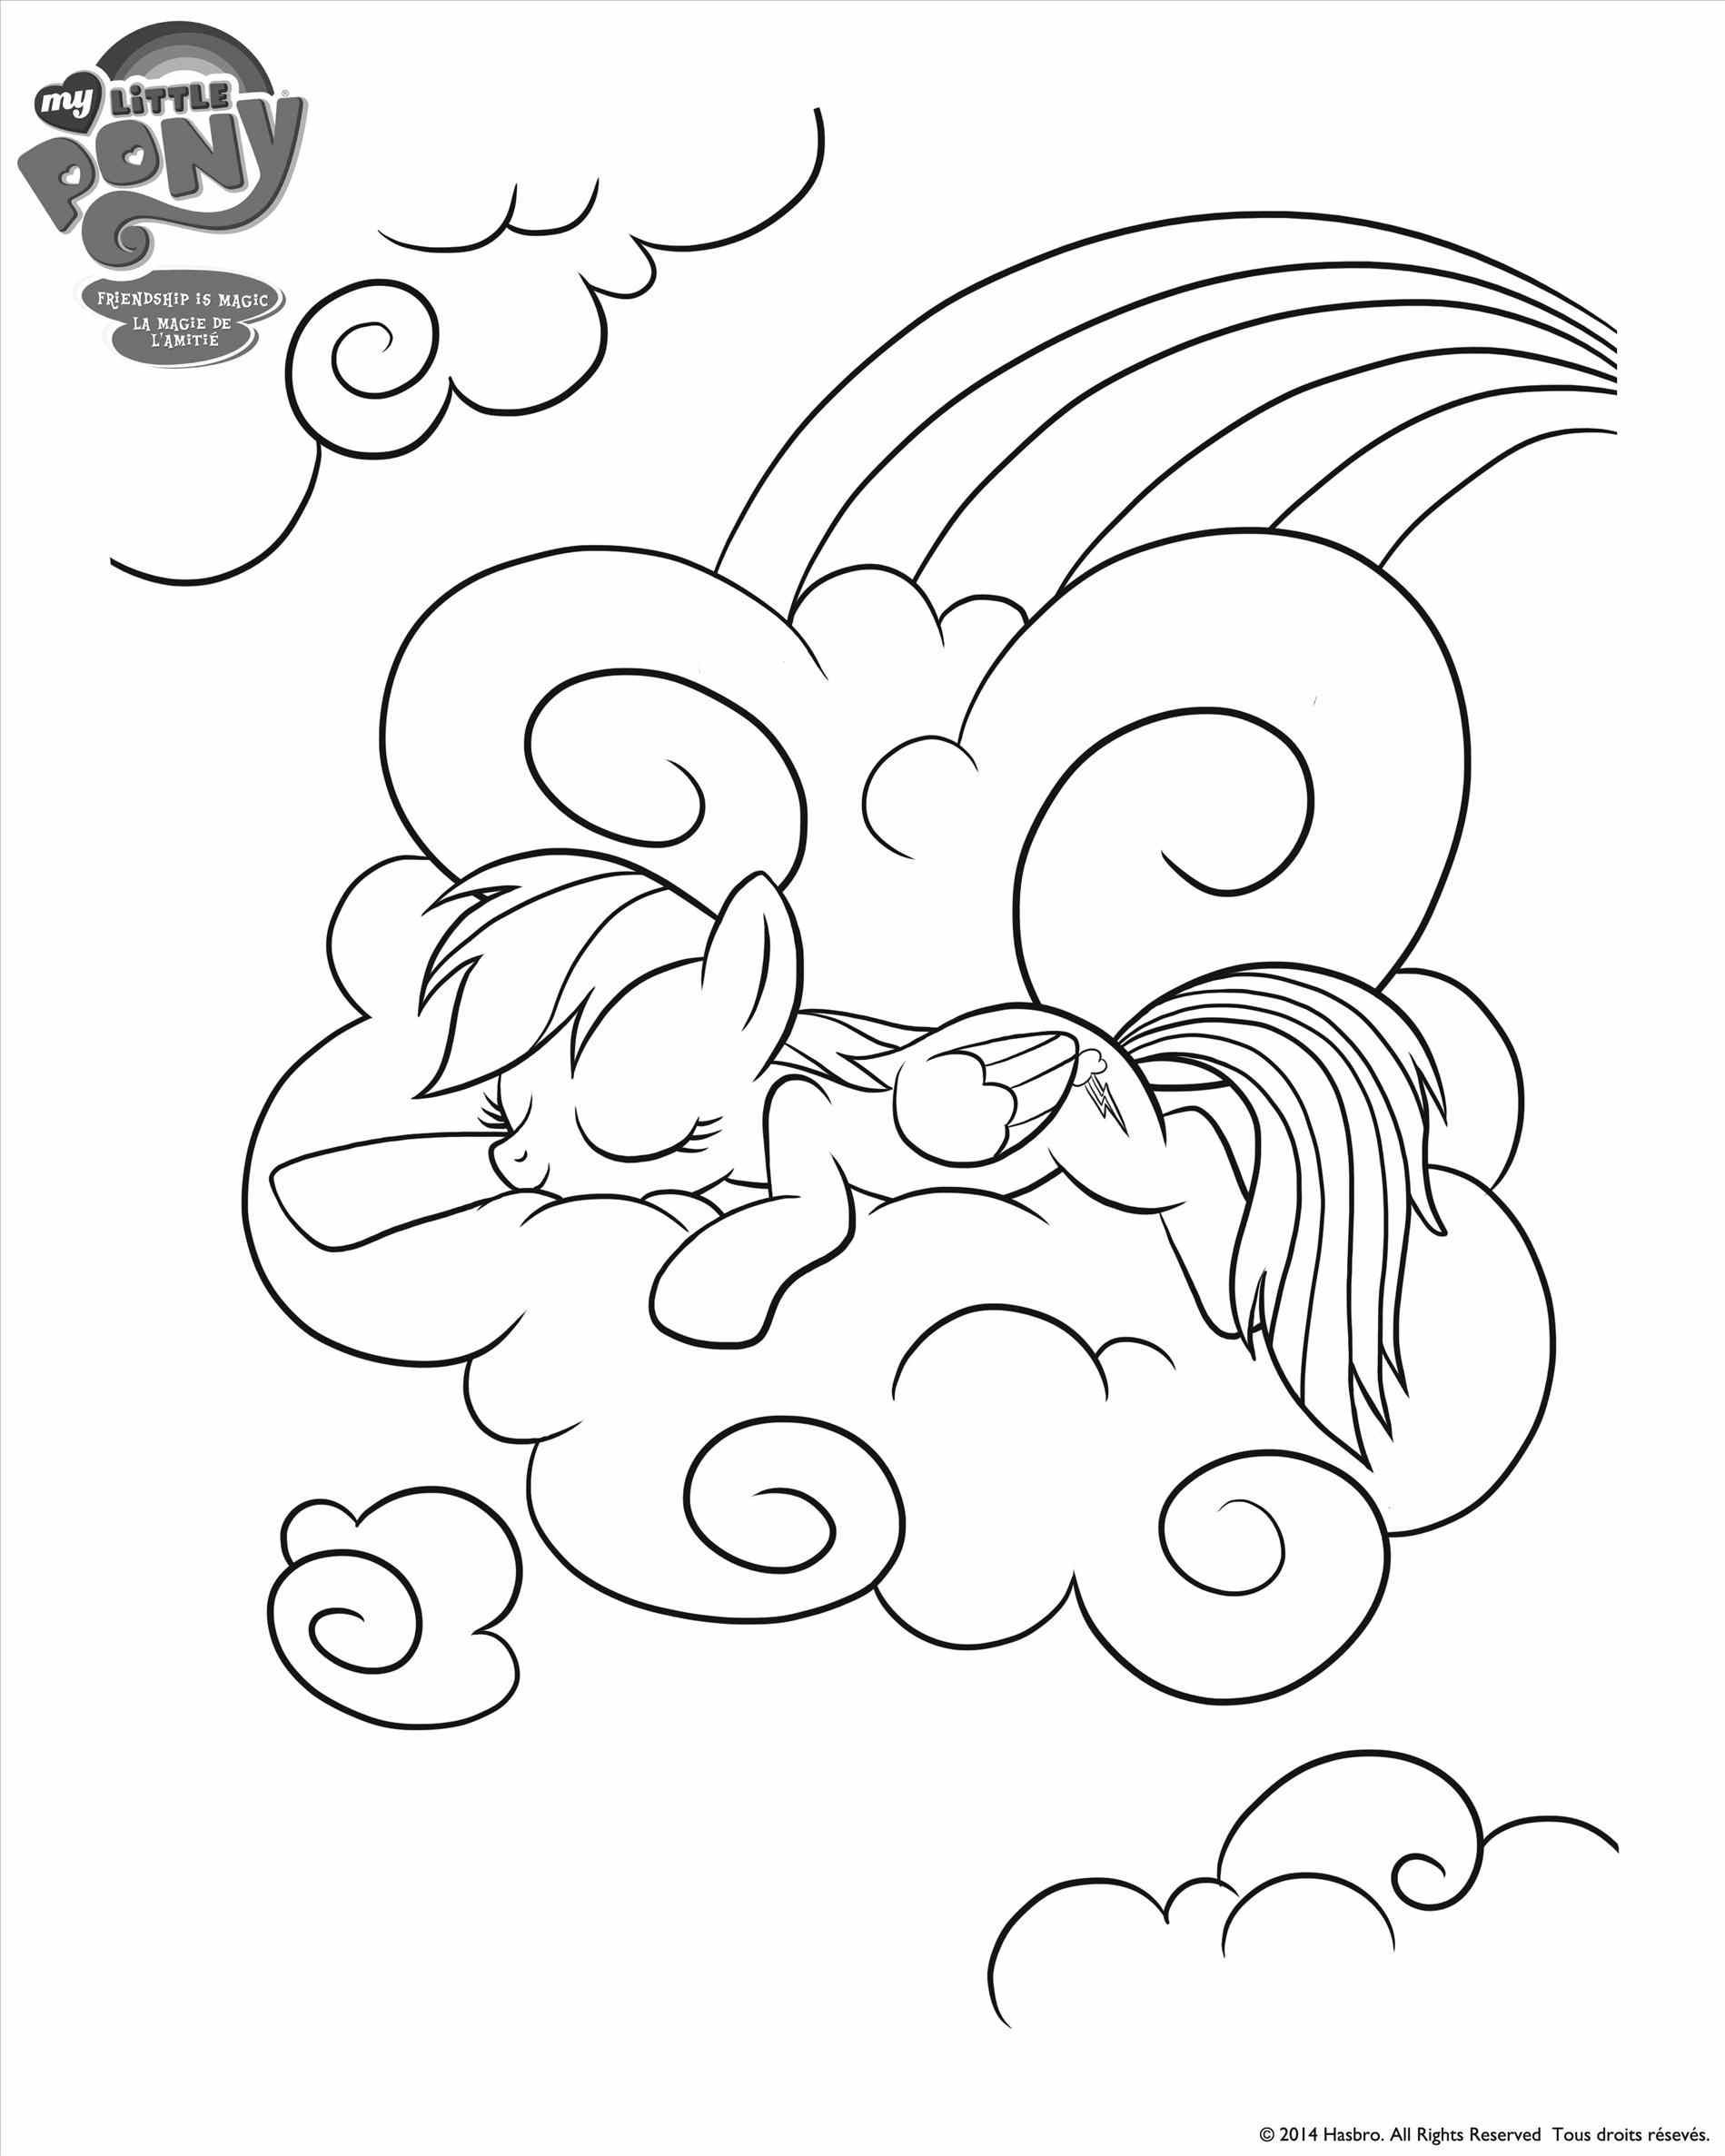 Coloring Rocks Unicorn Coloring Pages Cute Coloring Pages Rainbow Drawing